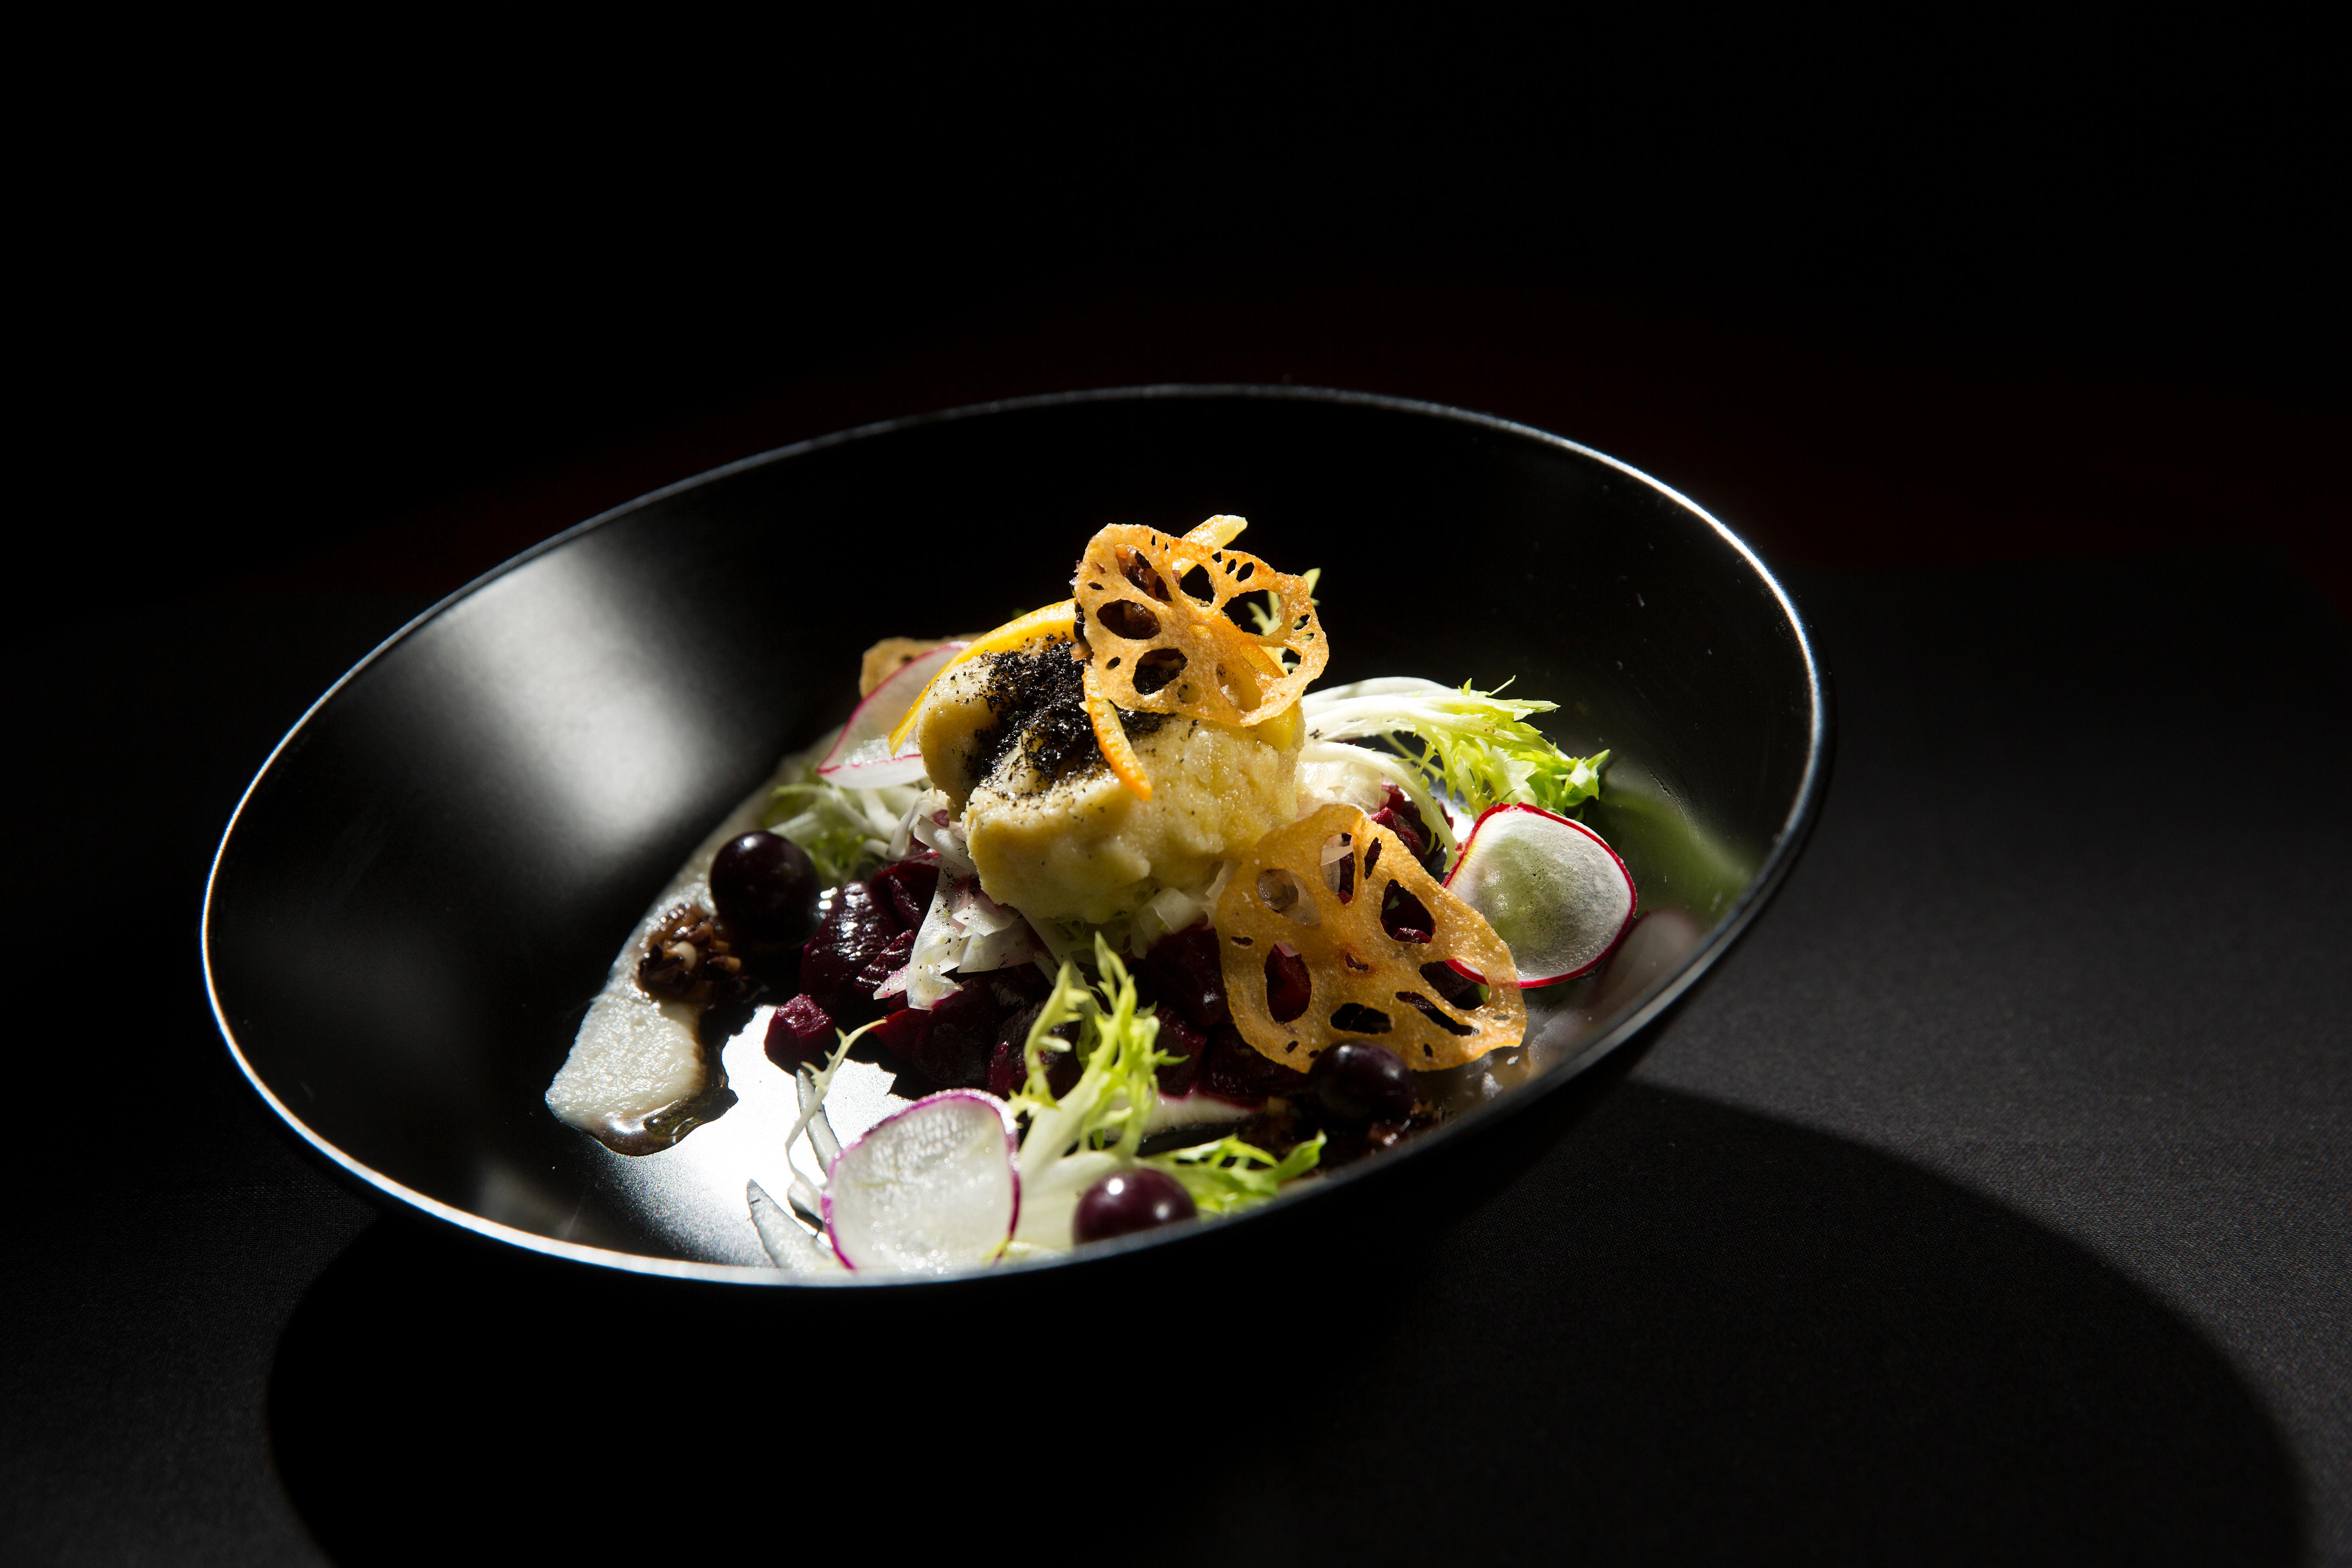 Owner and chef Derek Ronspies prepares Send Gnudes, a dish consisting of Willowood Farm marinated beets, blue cheese gnudi, cocoa nib vin, celeriac butter, pickled grapes, lotus root, green onion ash, and orange confit. Le Petit Cochon offers a menu that varies everyday. (Sy Bean / Seattle Refined)